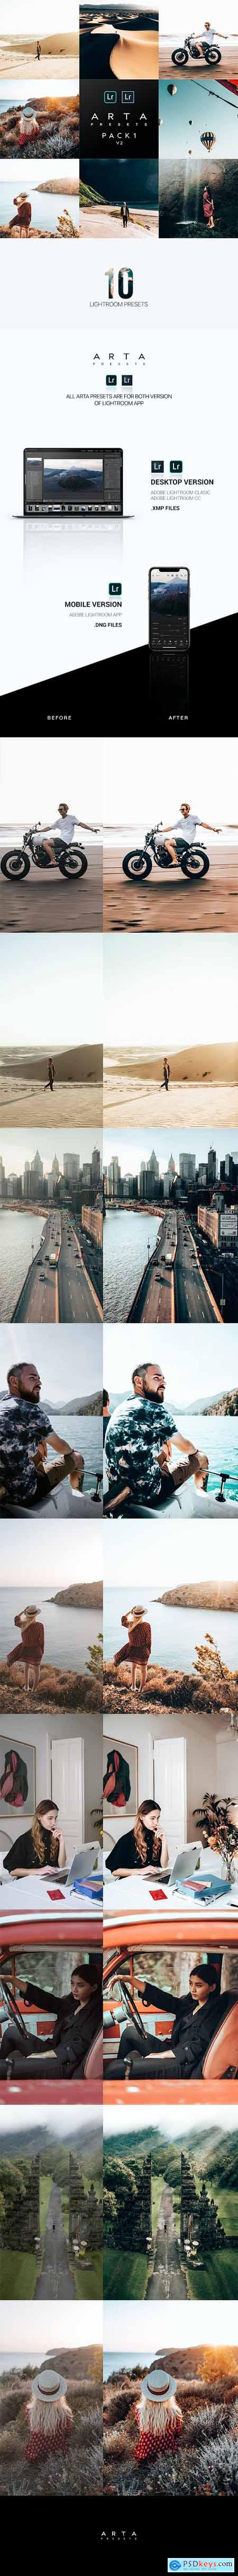 ARTA Preset Pack 1 v2 For Mobile and Desktop Lightroom 26532880